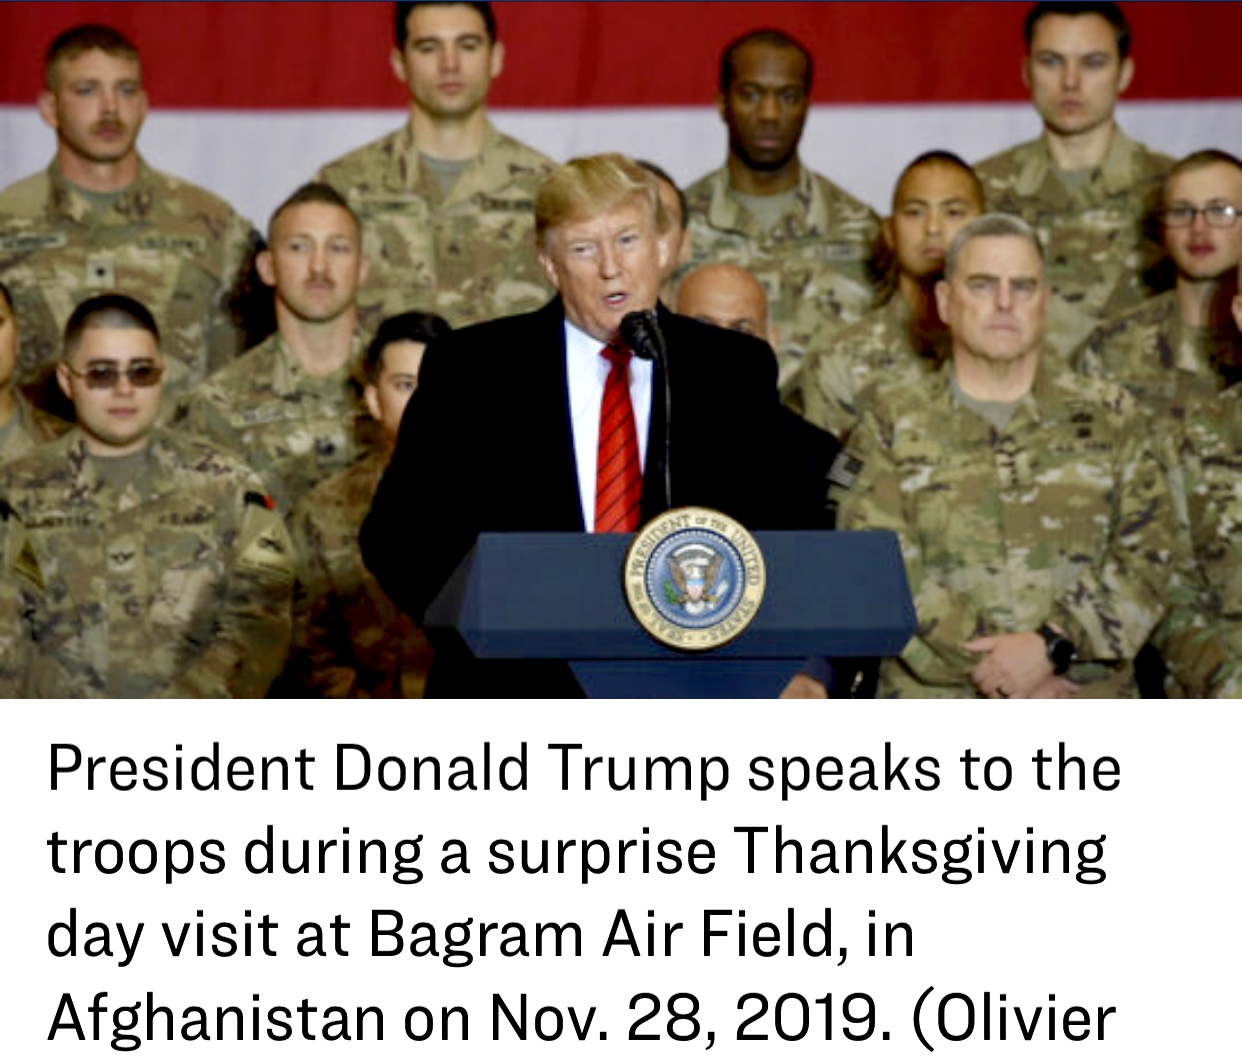 President Trump Visits With Troops in Afghanistan On Thanksgiving Day